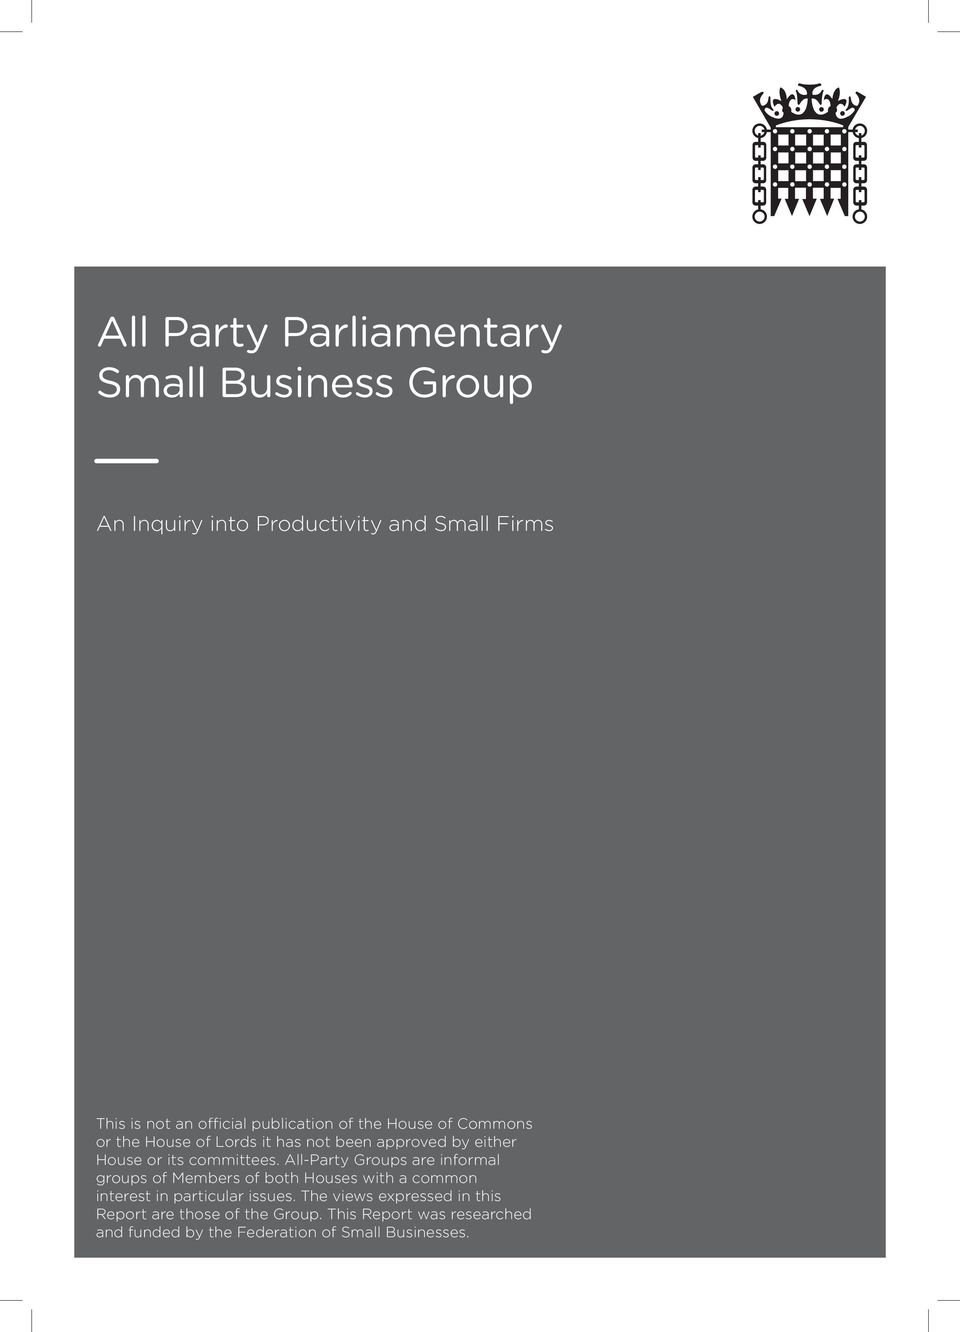 All-Party Groups are informal groups of Members of both Houses with a common interest in particular issues.